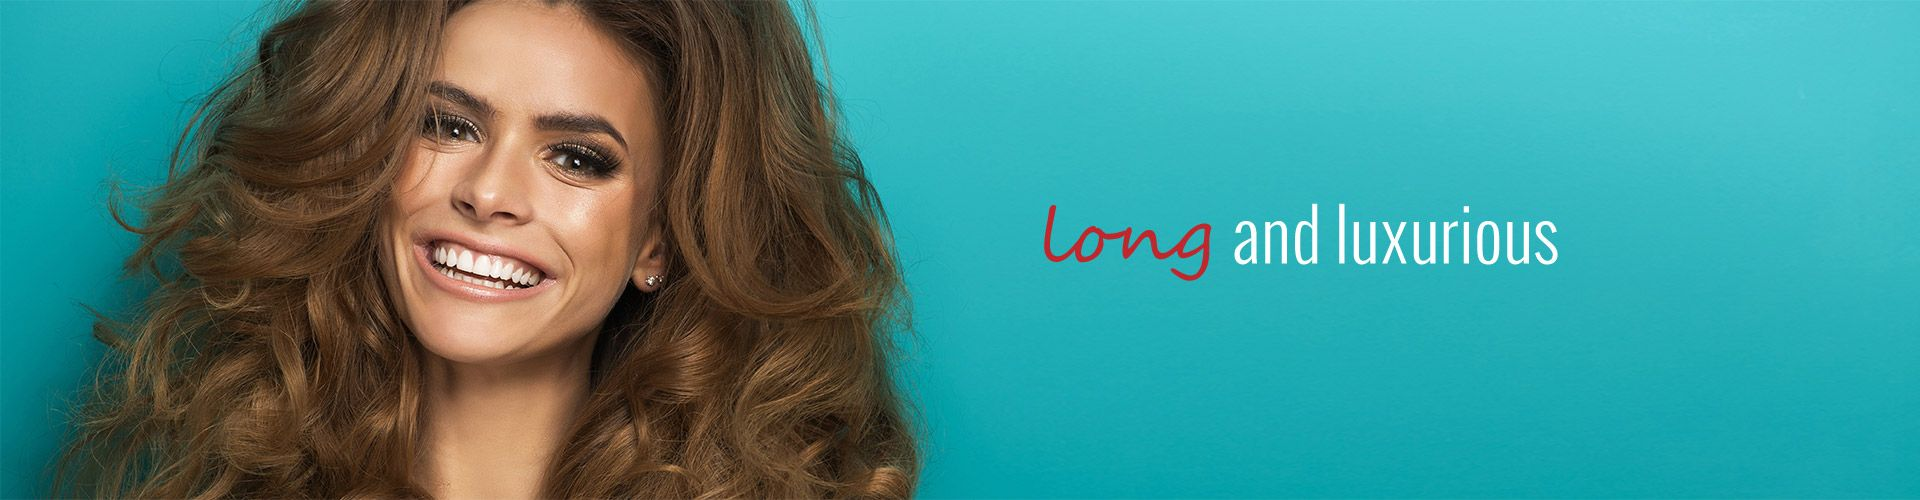 long and luxurious | girl with long brown hair